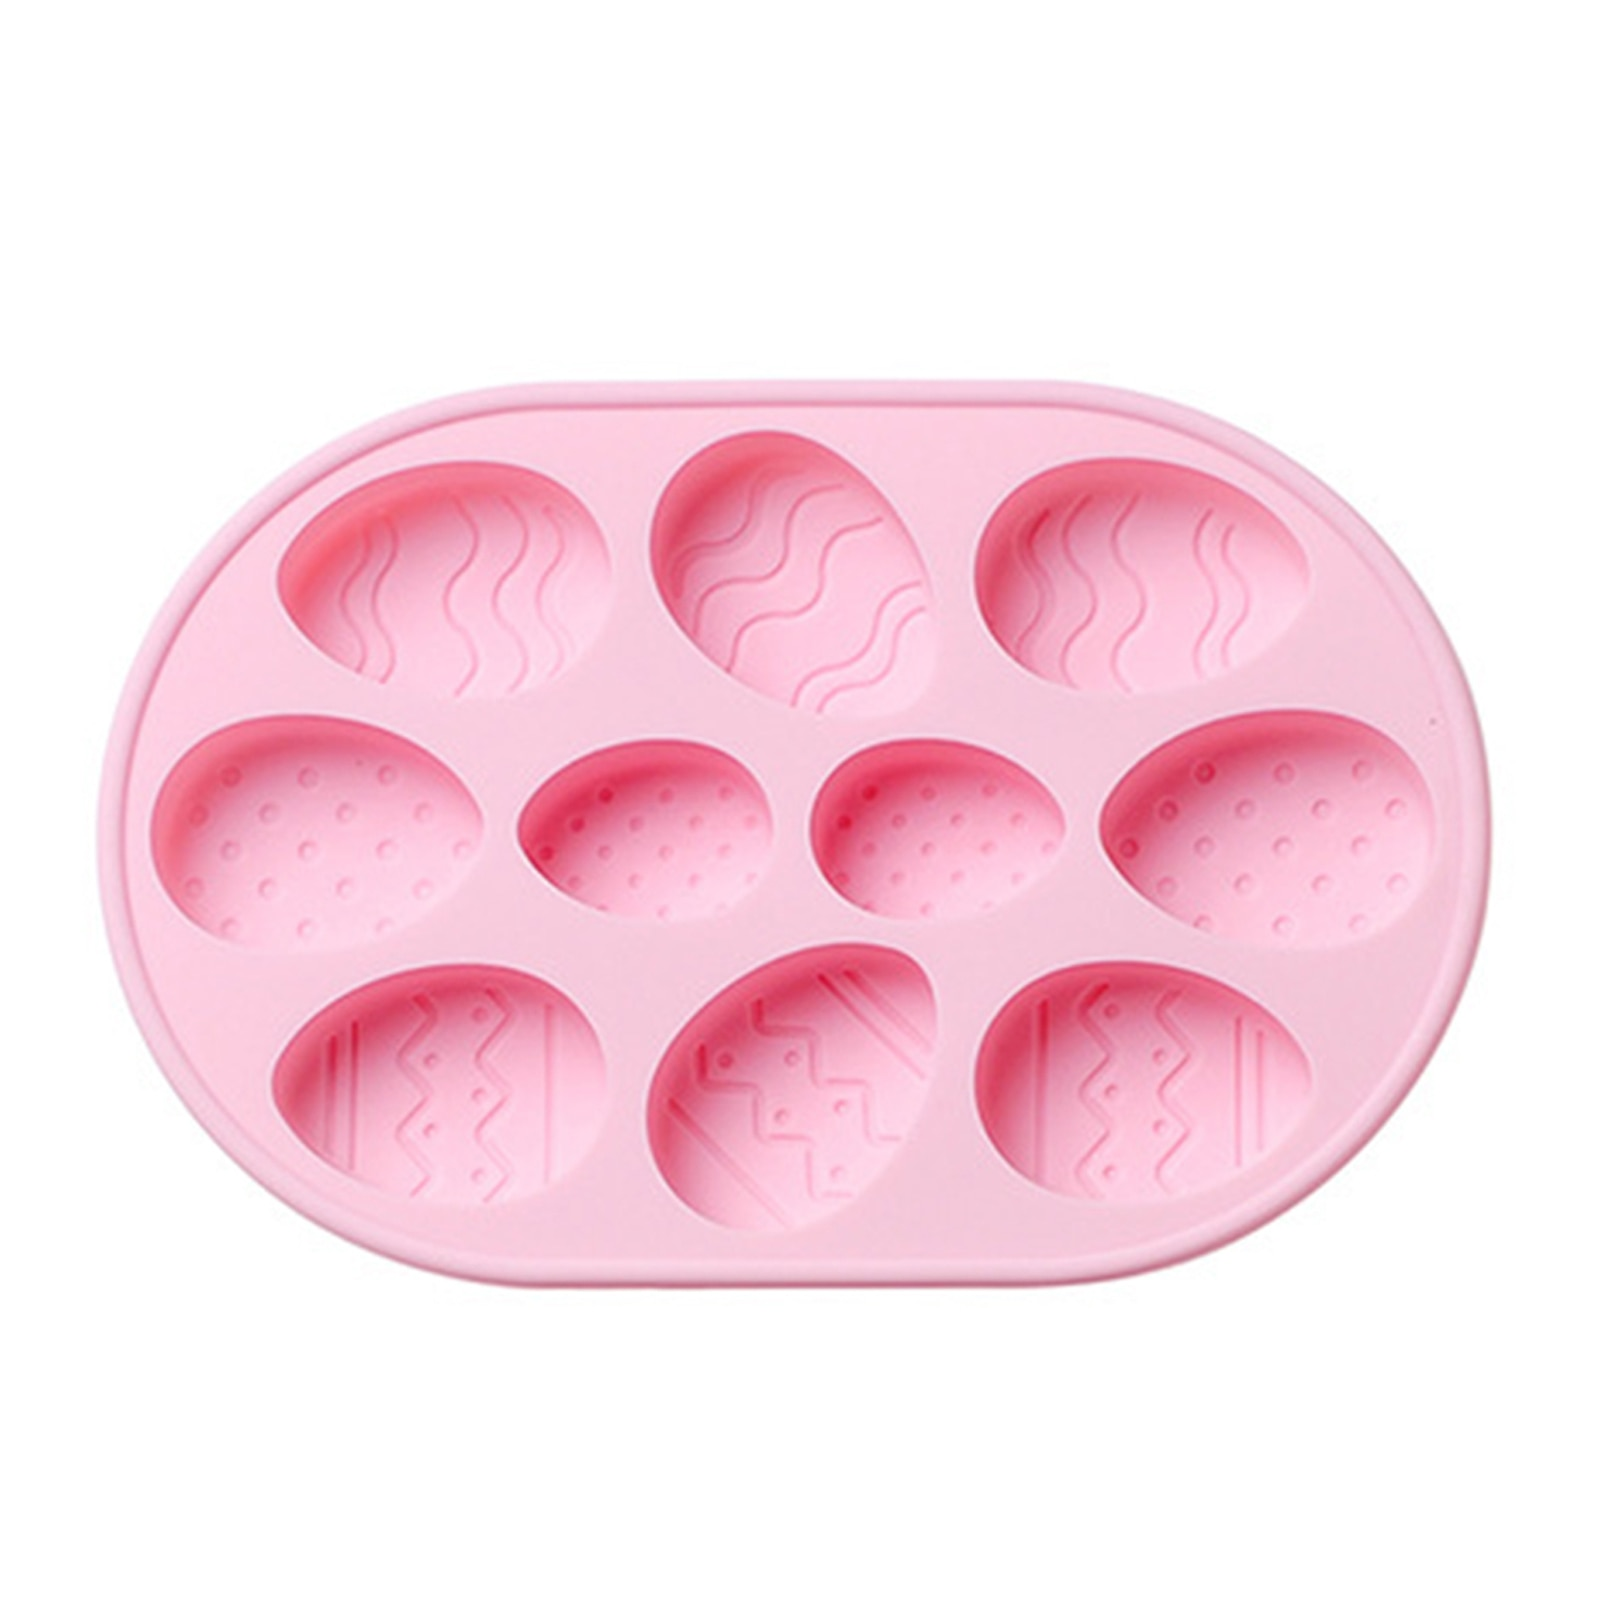 10 Cells Easter Egg Cake Mold with 2 Different Size Holes Silicone Multifunctional Baking Pan for Soap Candle Cookies HK